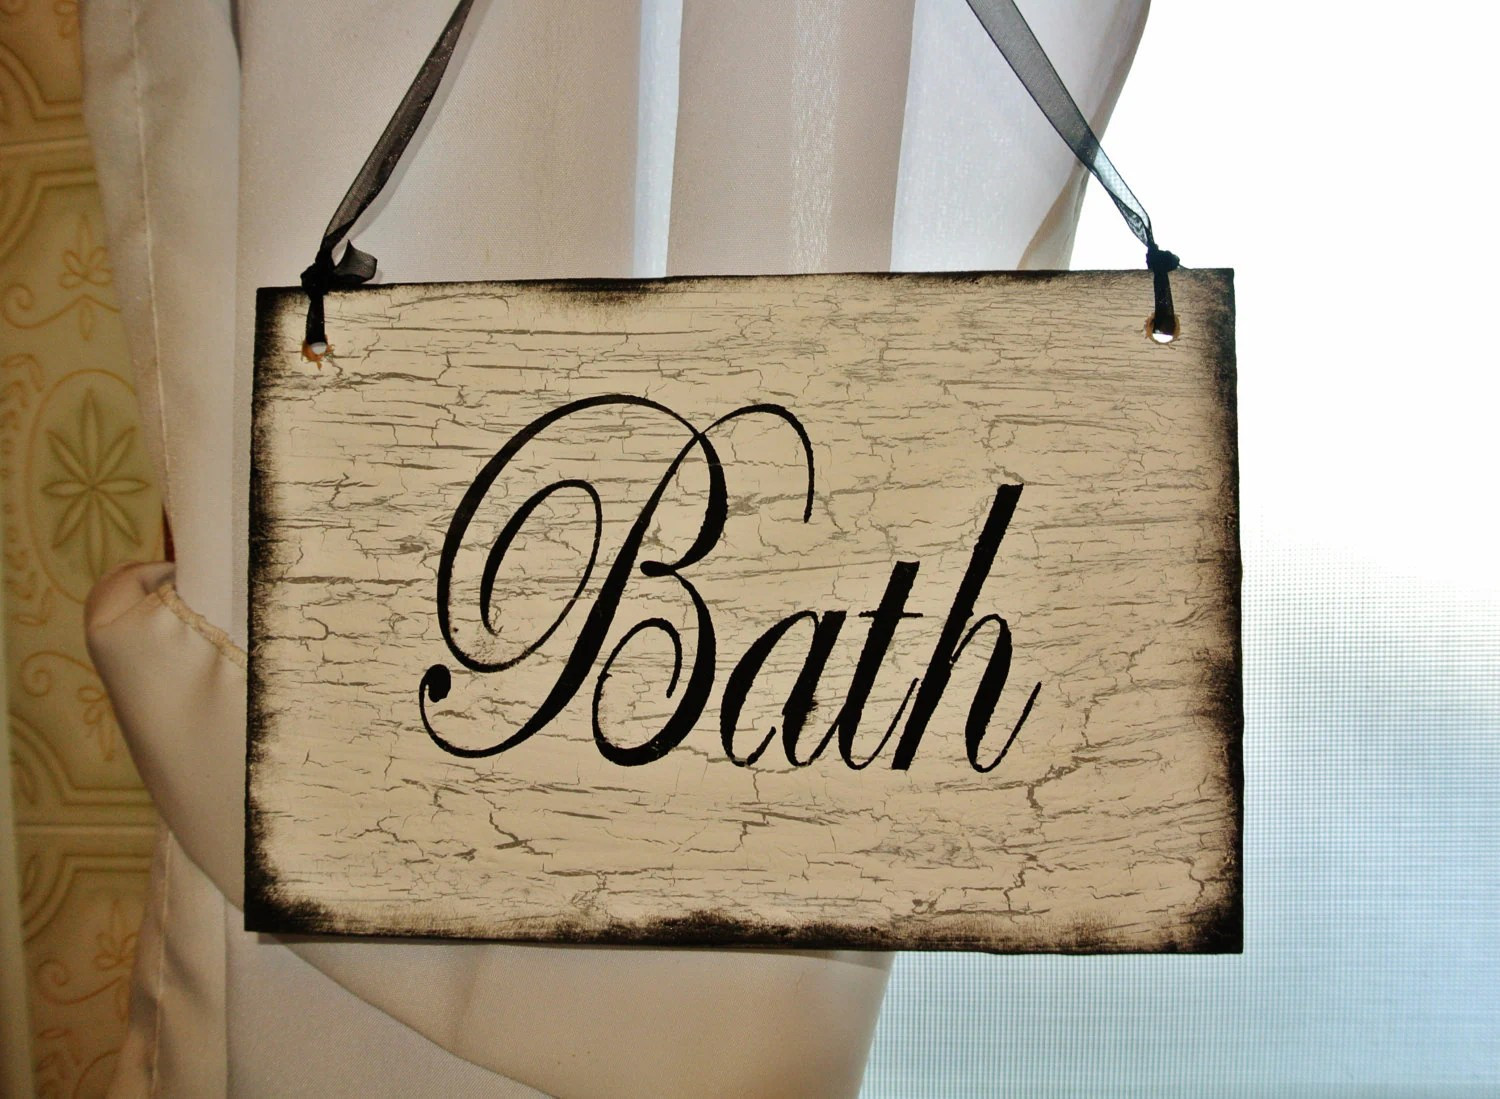 Bath Wood Sign bathroom decor shabbyvintageantiqued home